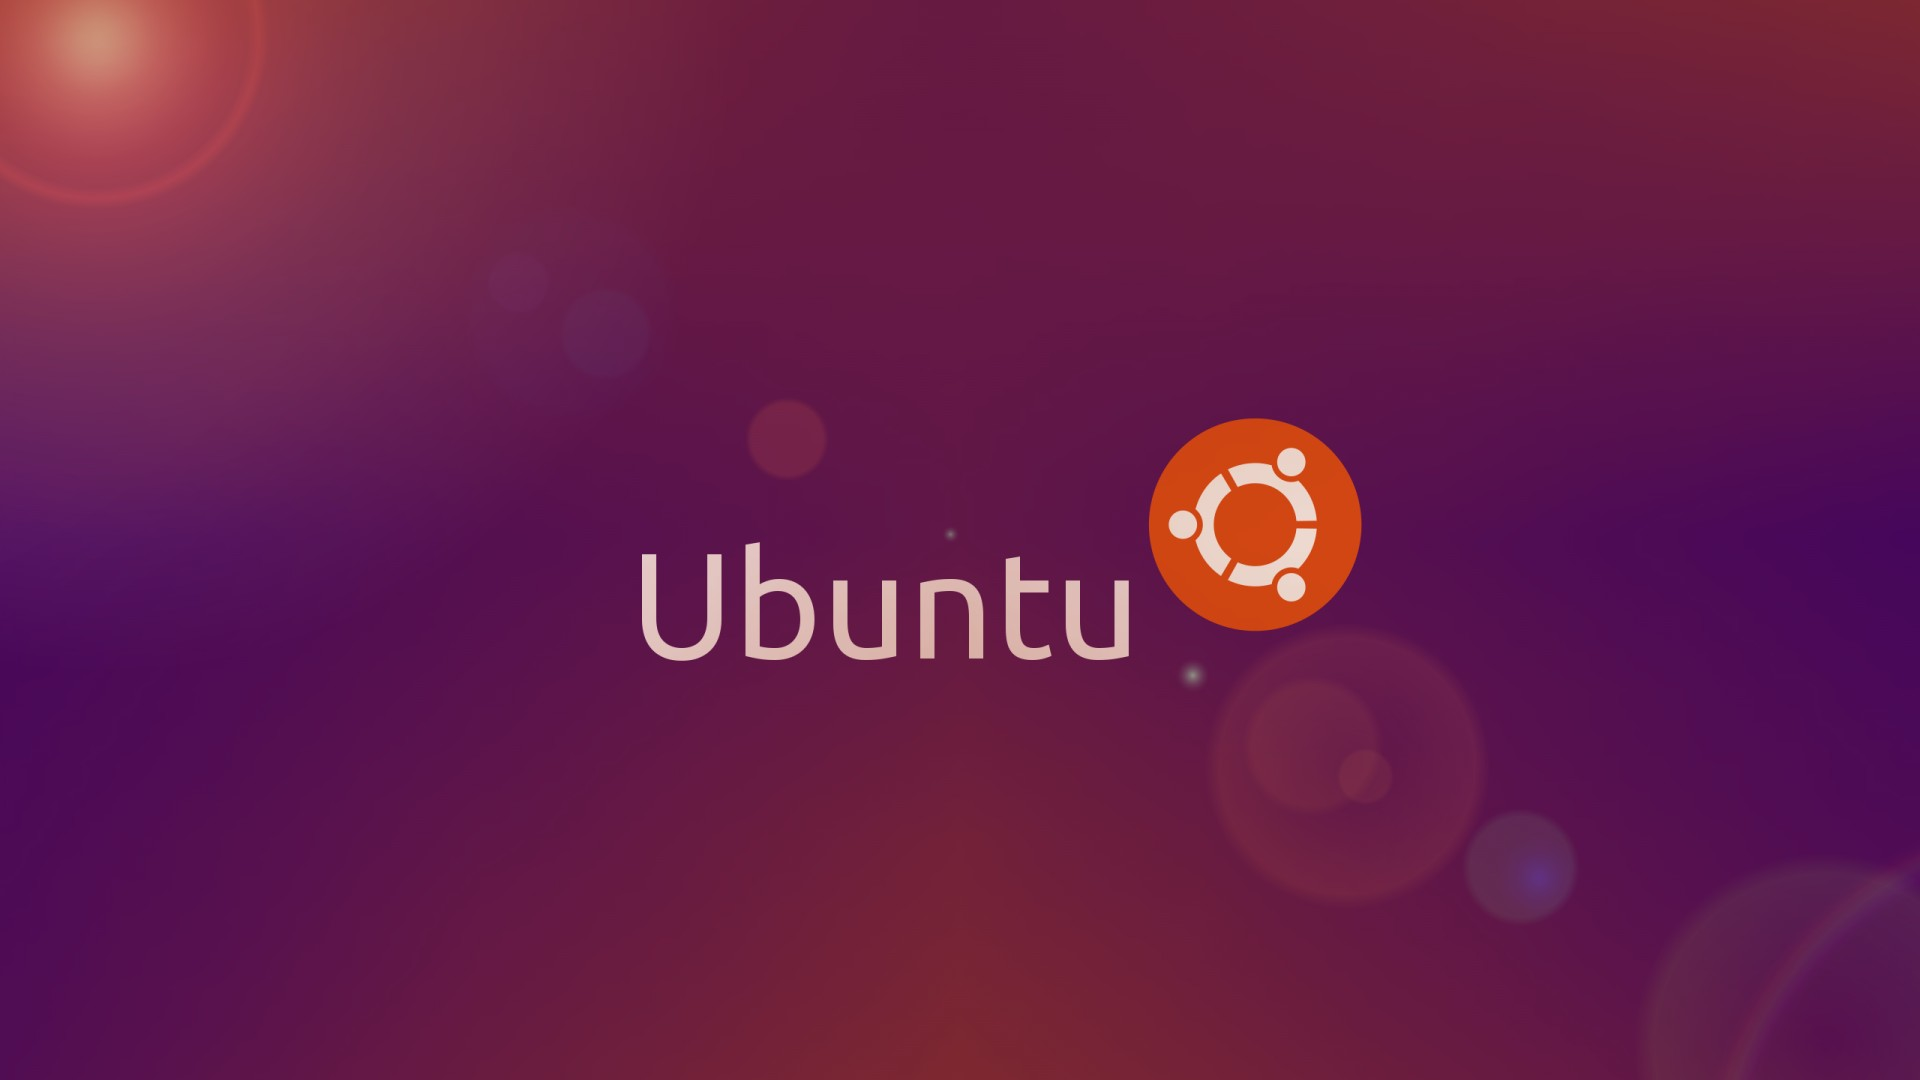 Ubuntu Wallpapers Best Wallpapers 1920x1080